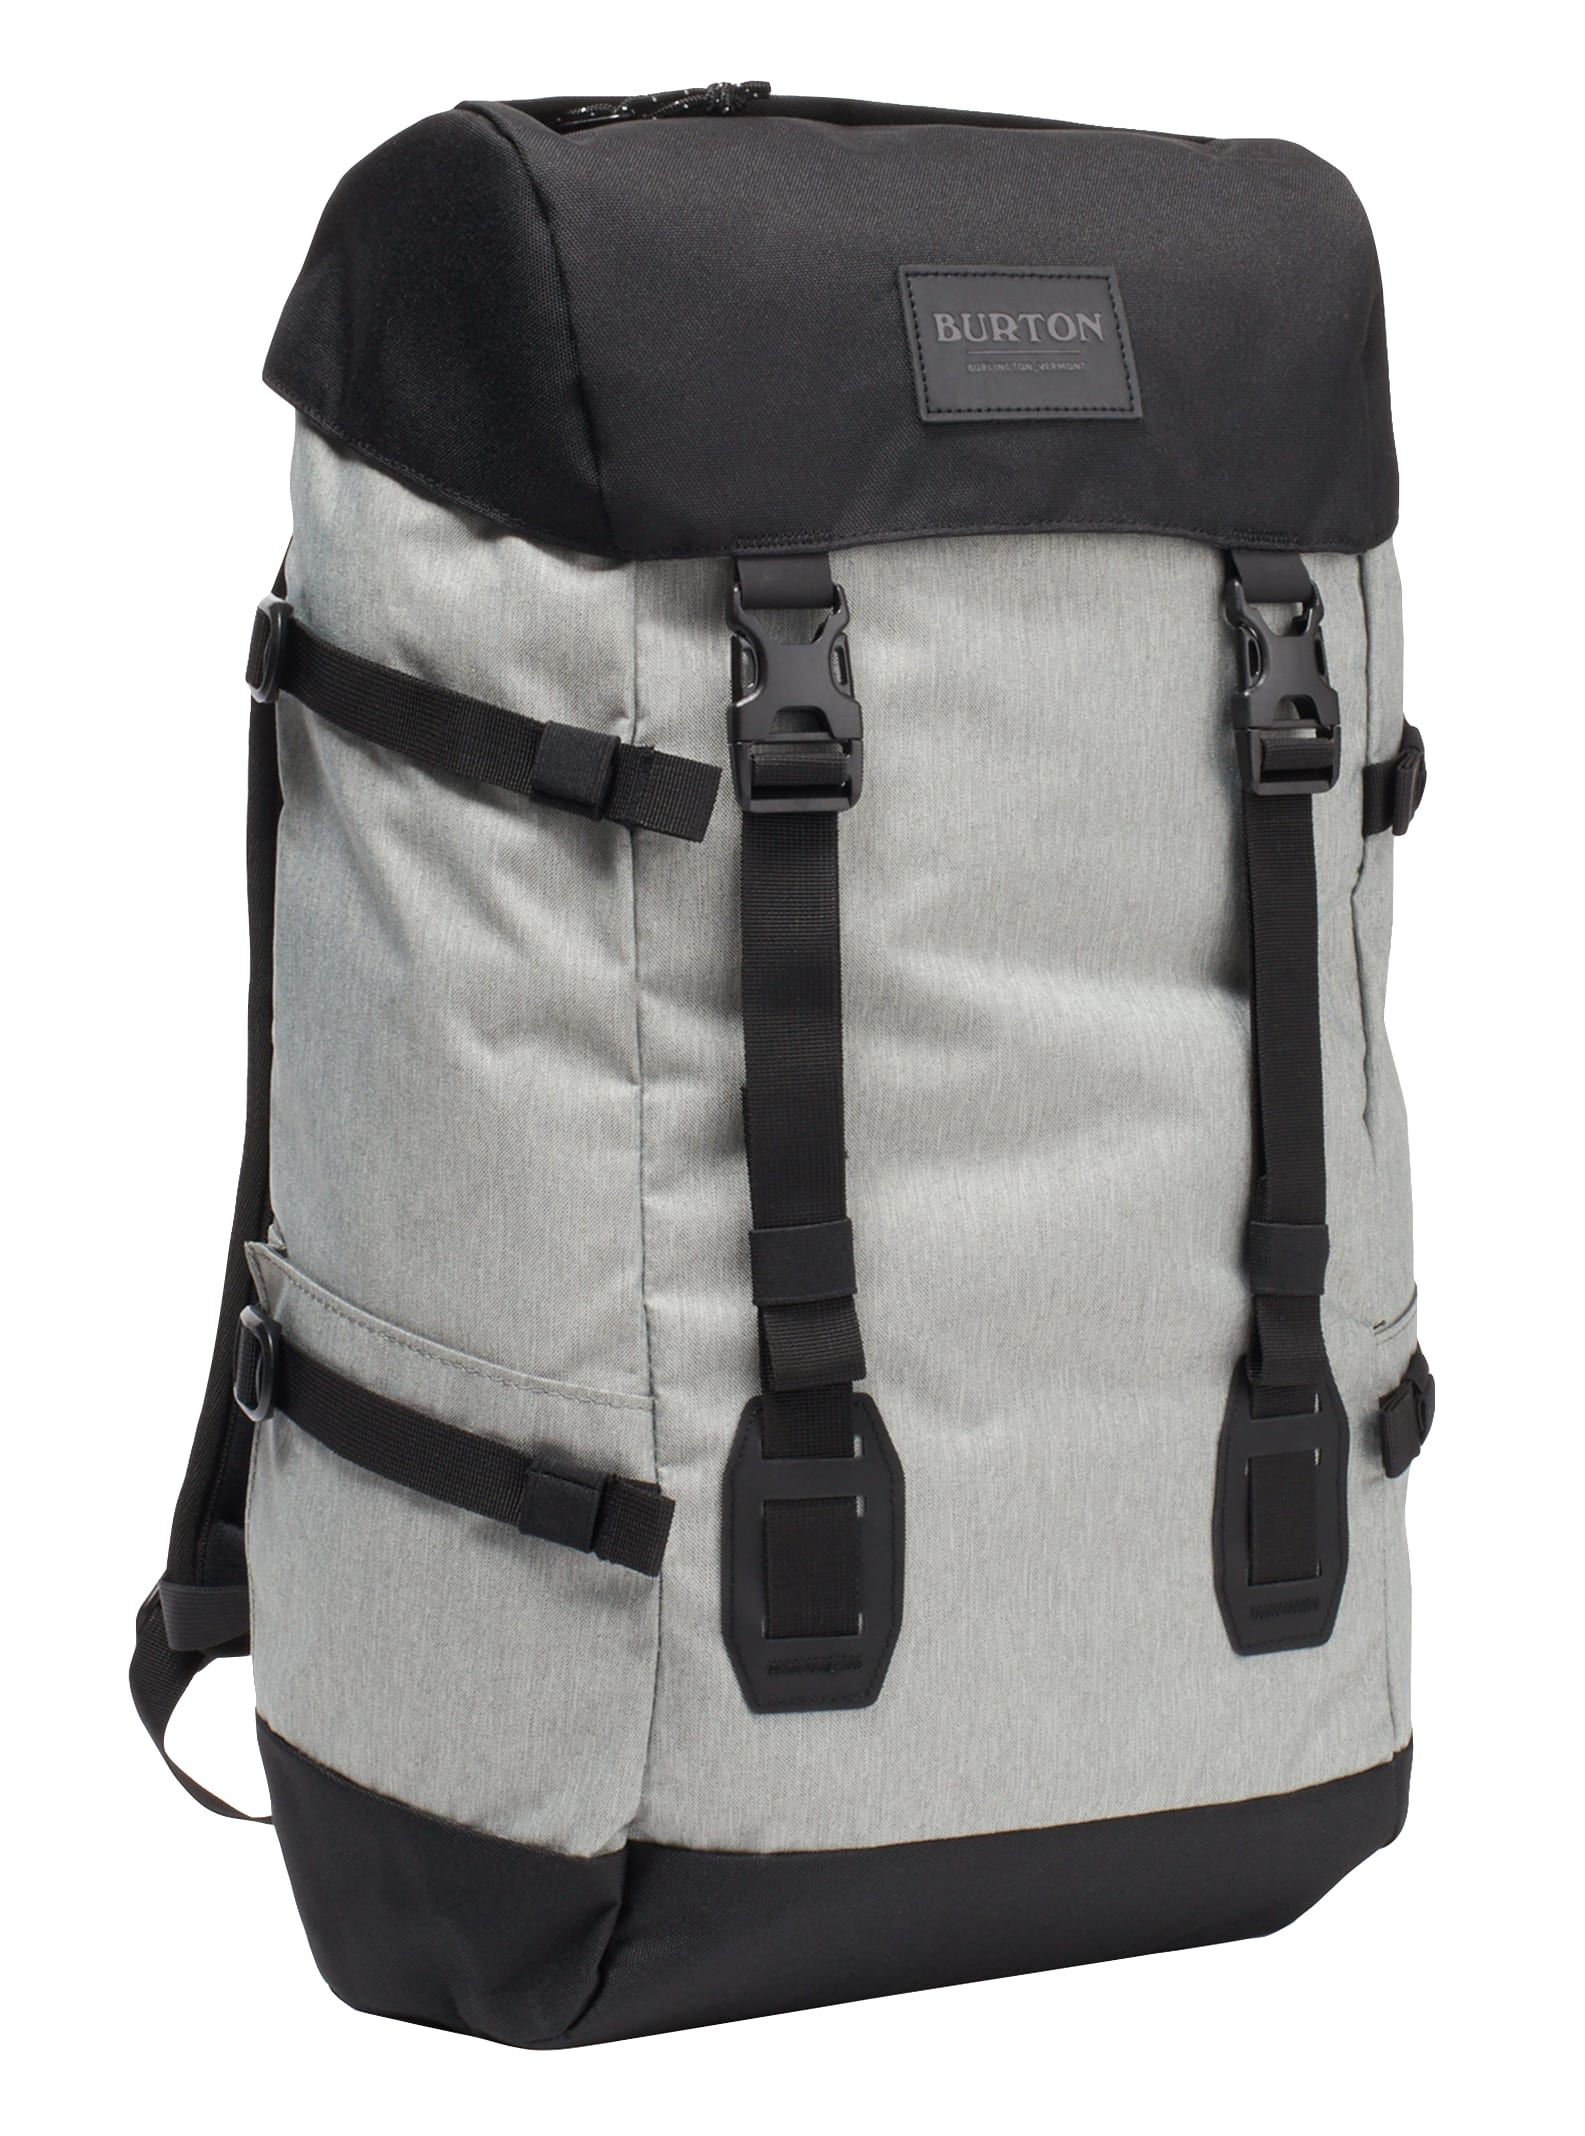 f07522ba440d0 Burton Tinder 2.0 30L Backpack in 2019